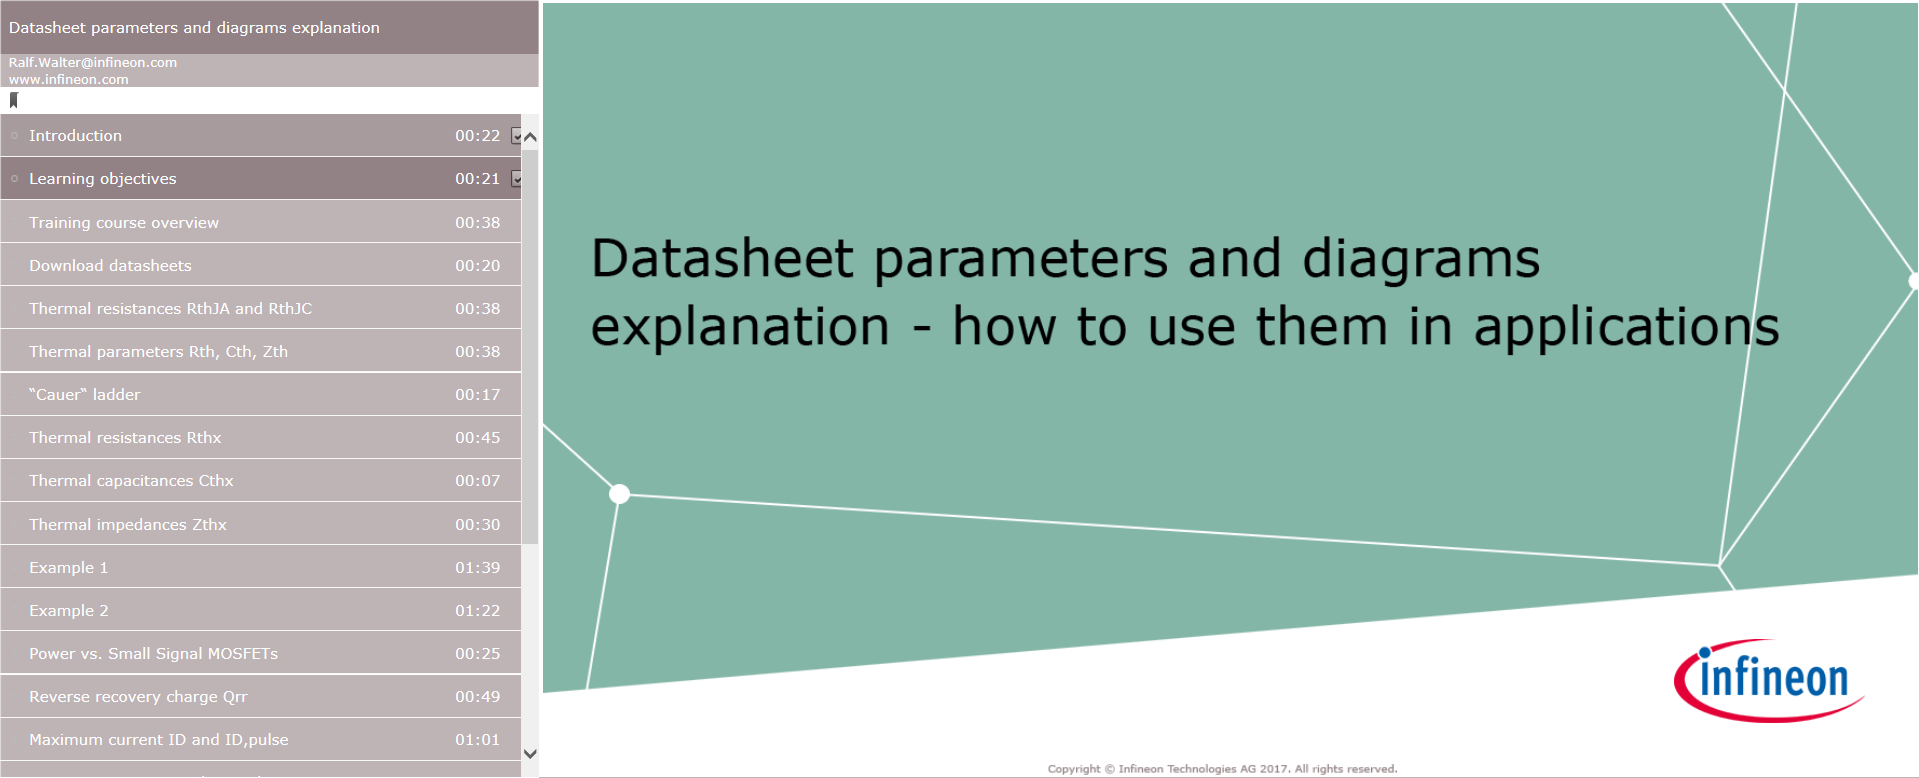 eLearning Datasheet explanation